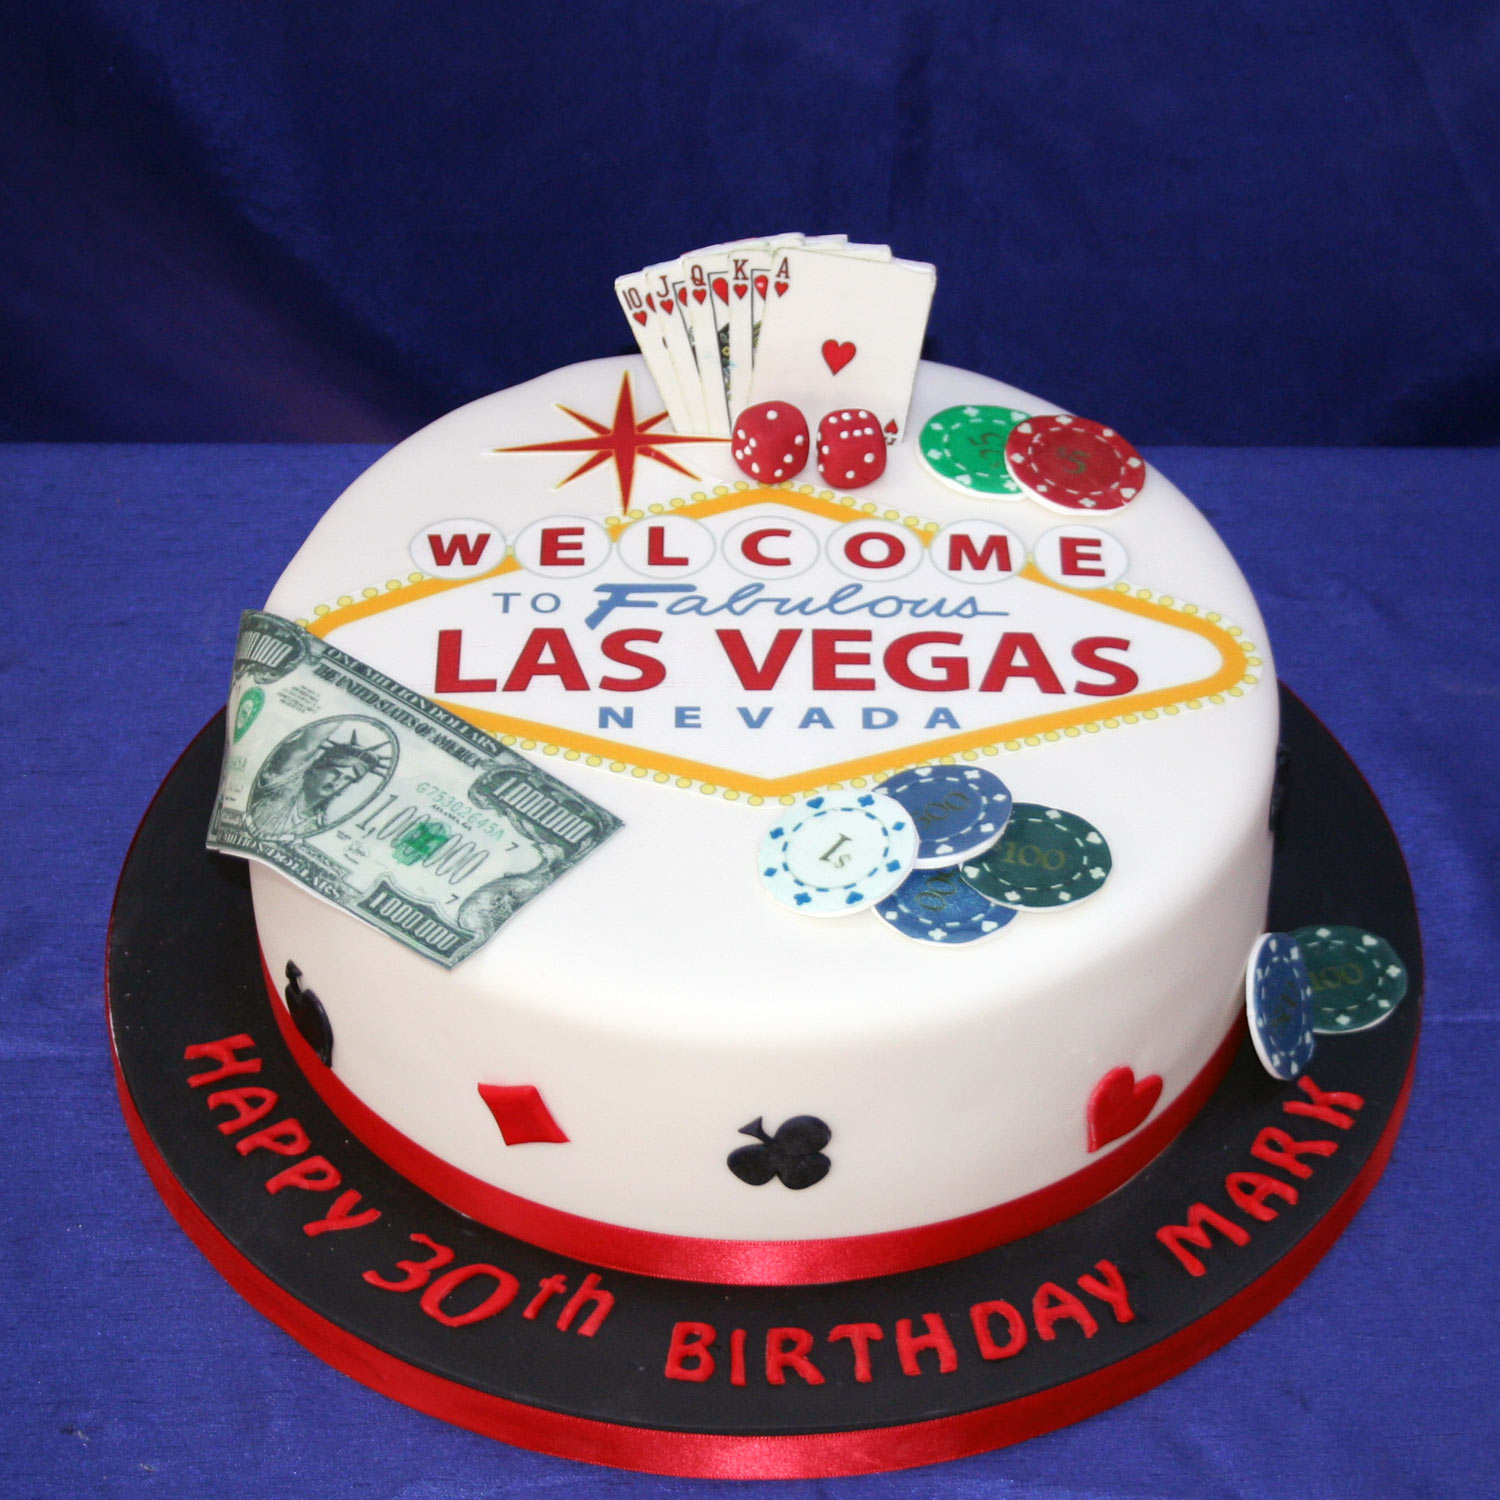 Charming Las Vegas Themed Birthday Cake Design Ideas